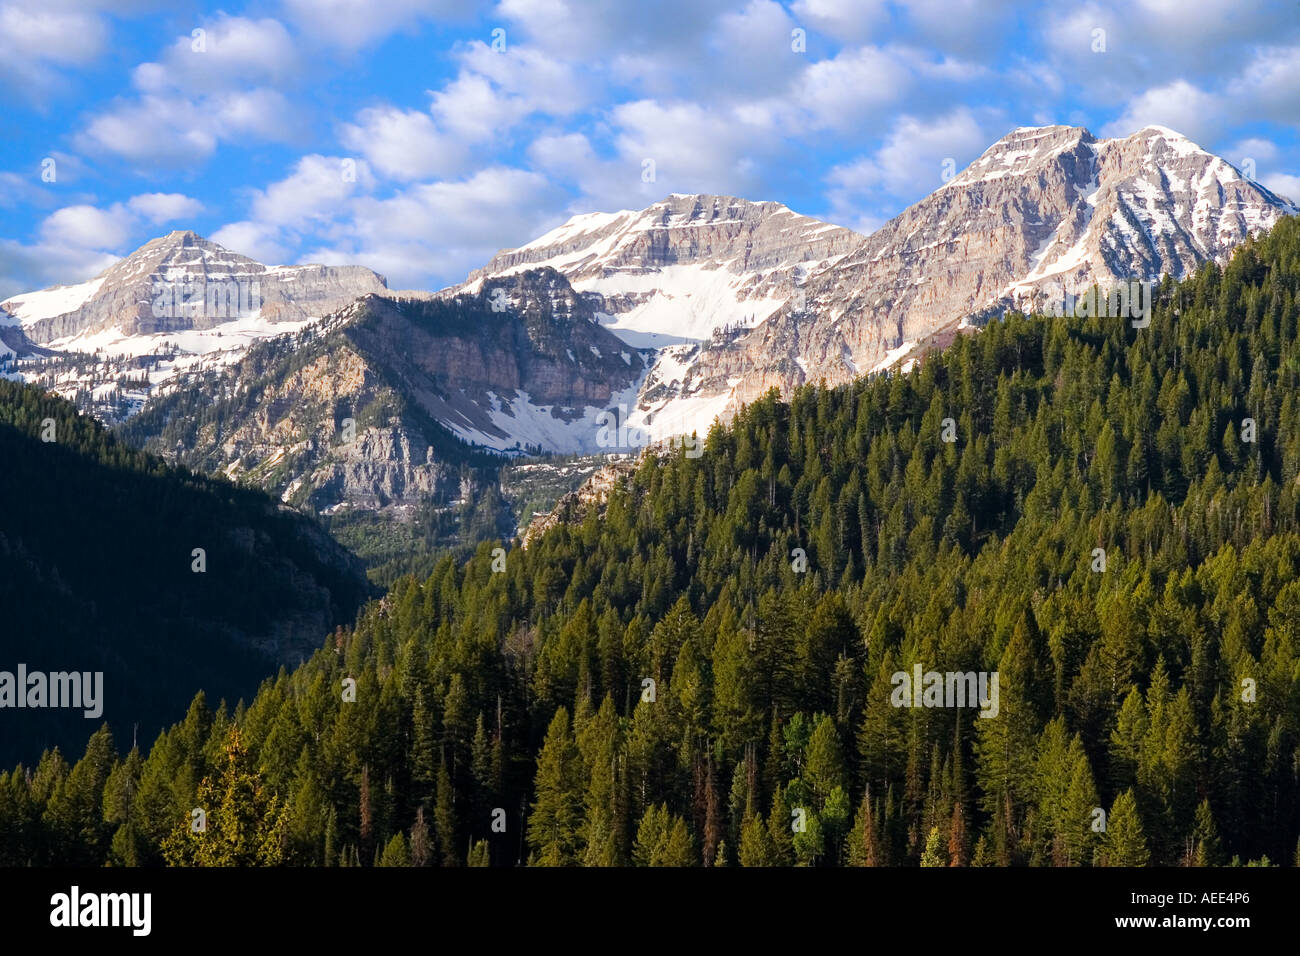 Mount Timpanogos in the Wasatch Mountains of northern Utah ...